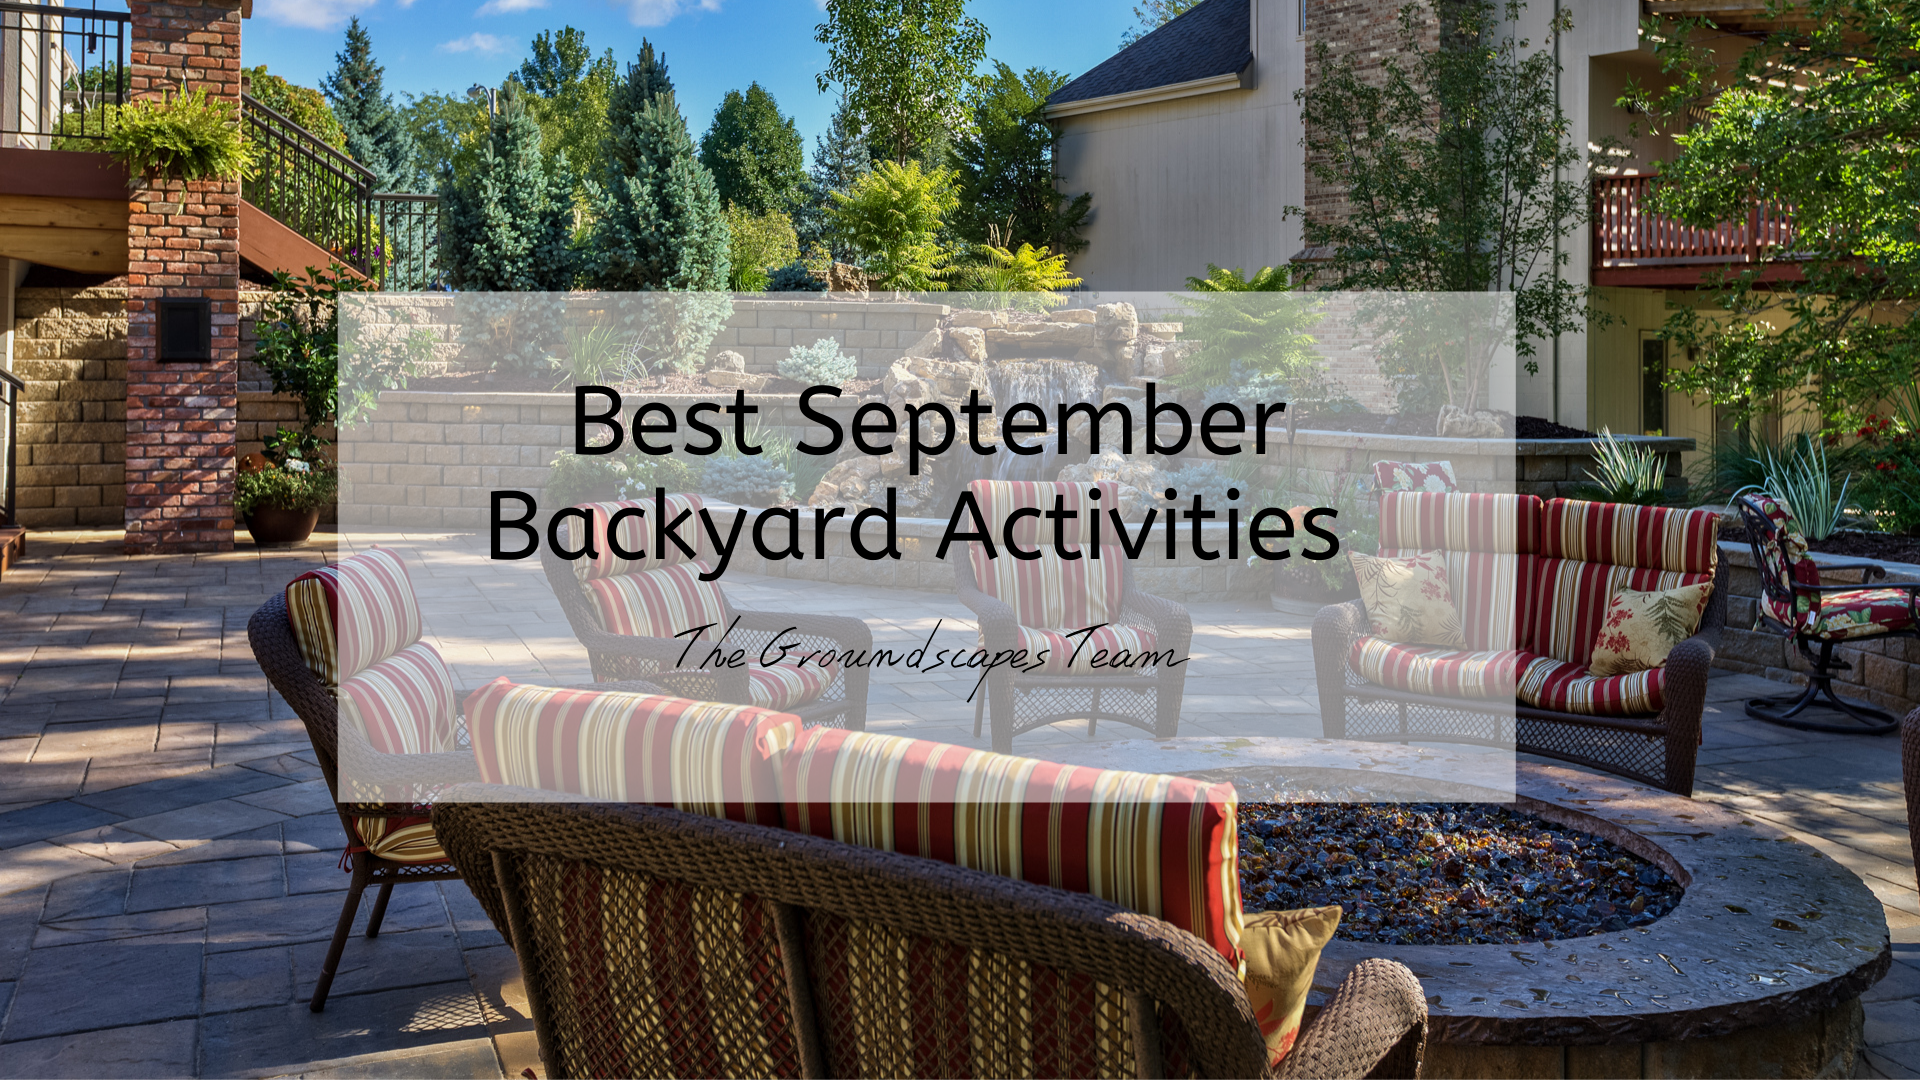 Best September Backyard Activities